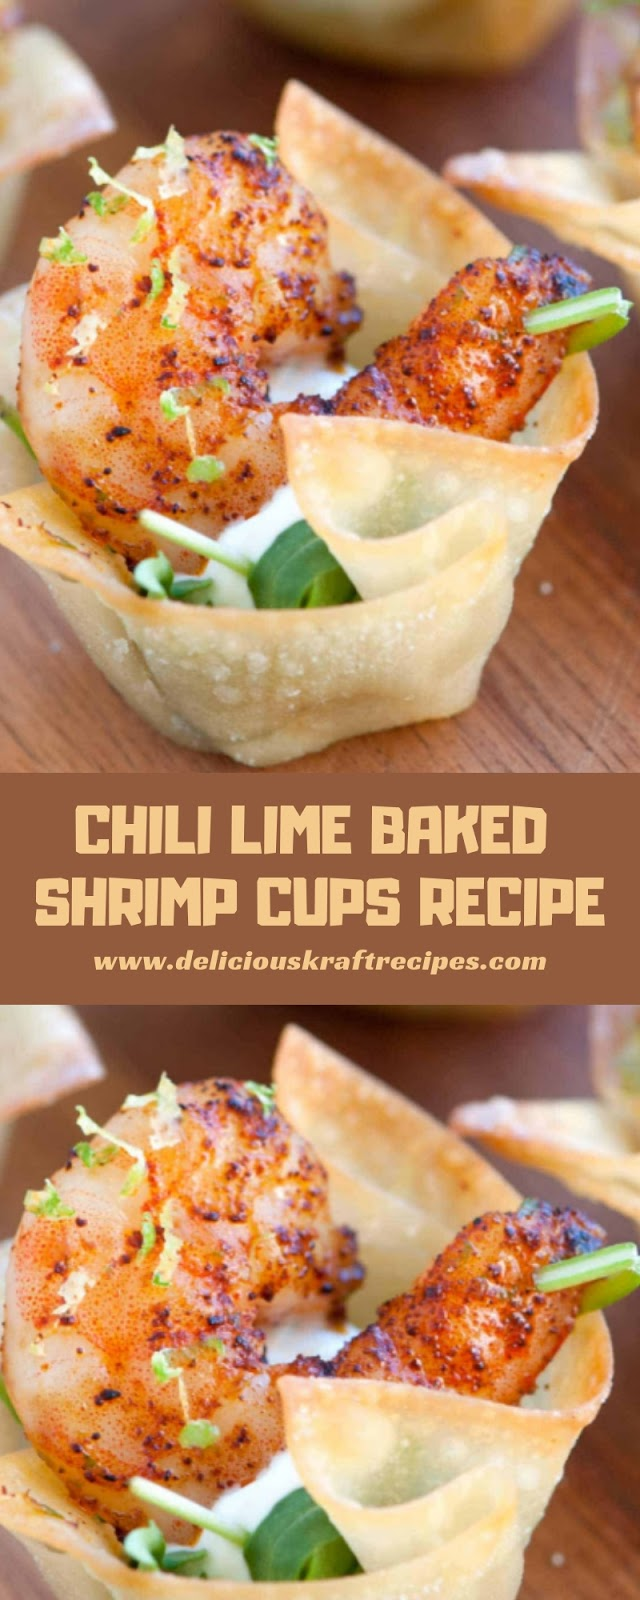 CHILI LIME BAKED SHRIMP CUPS RECIPE